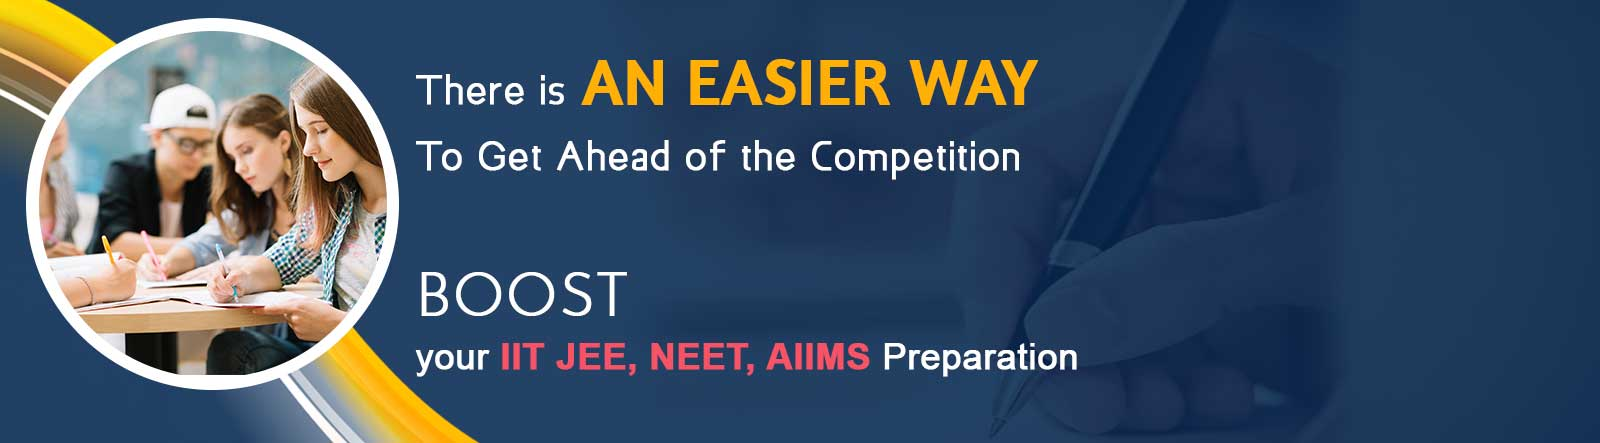 Boost IIT-JEE, NEET preparation